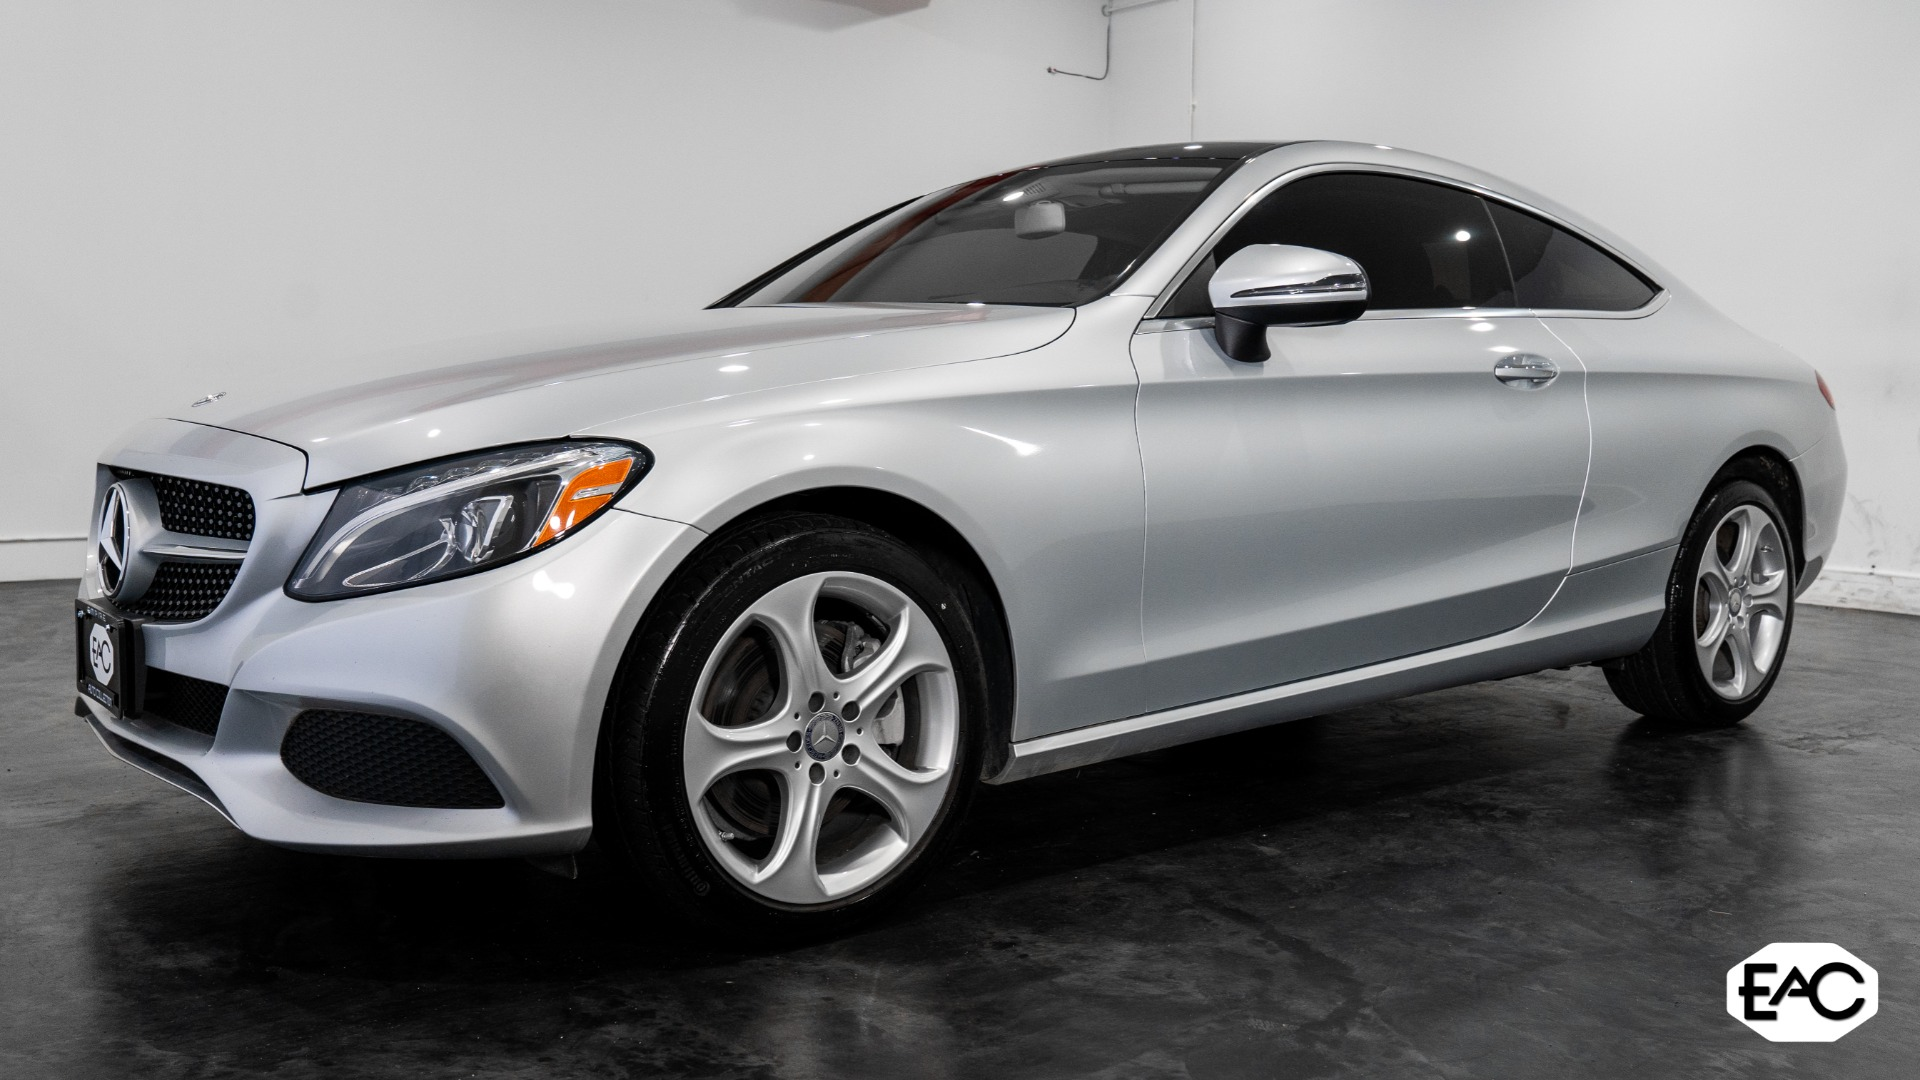 Used 2017 Mercedes-Benz C-Class C 300 4MATIC for sale $30,490 at Empire Auto Collection in Warren MI 48091 1